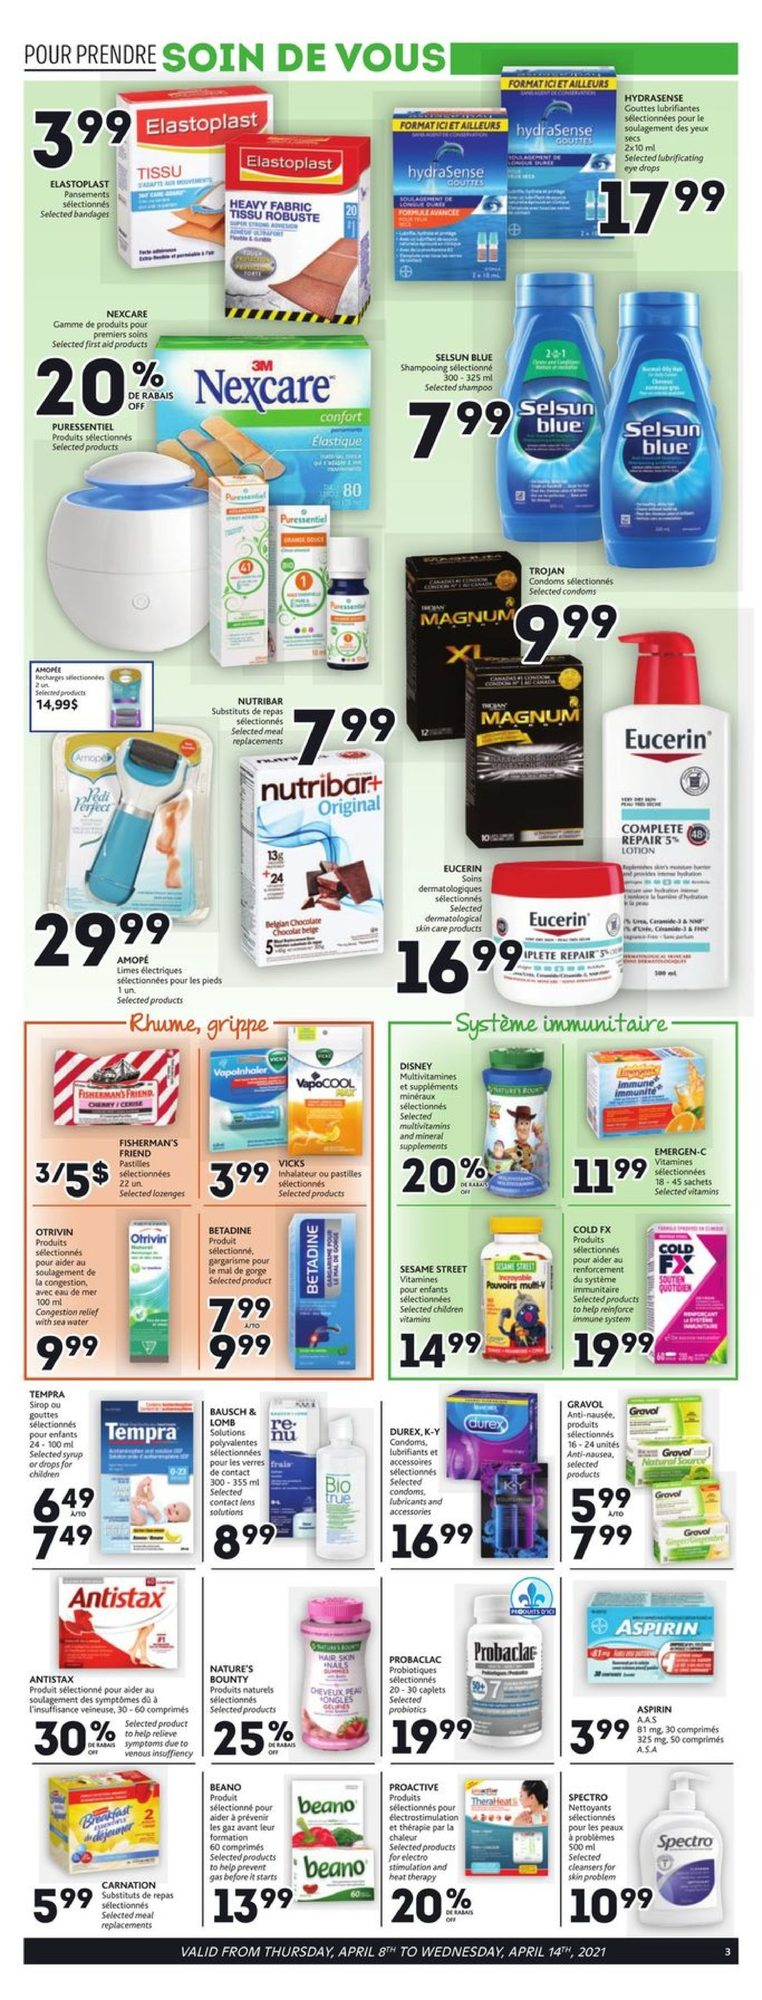 Brunet - Weekly Flyer Specials - Page 3